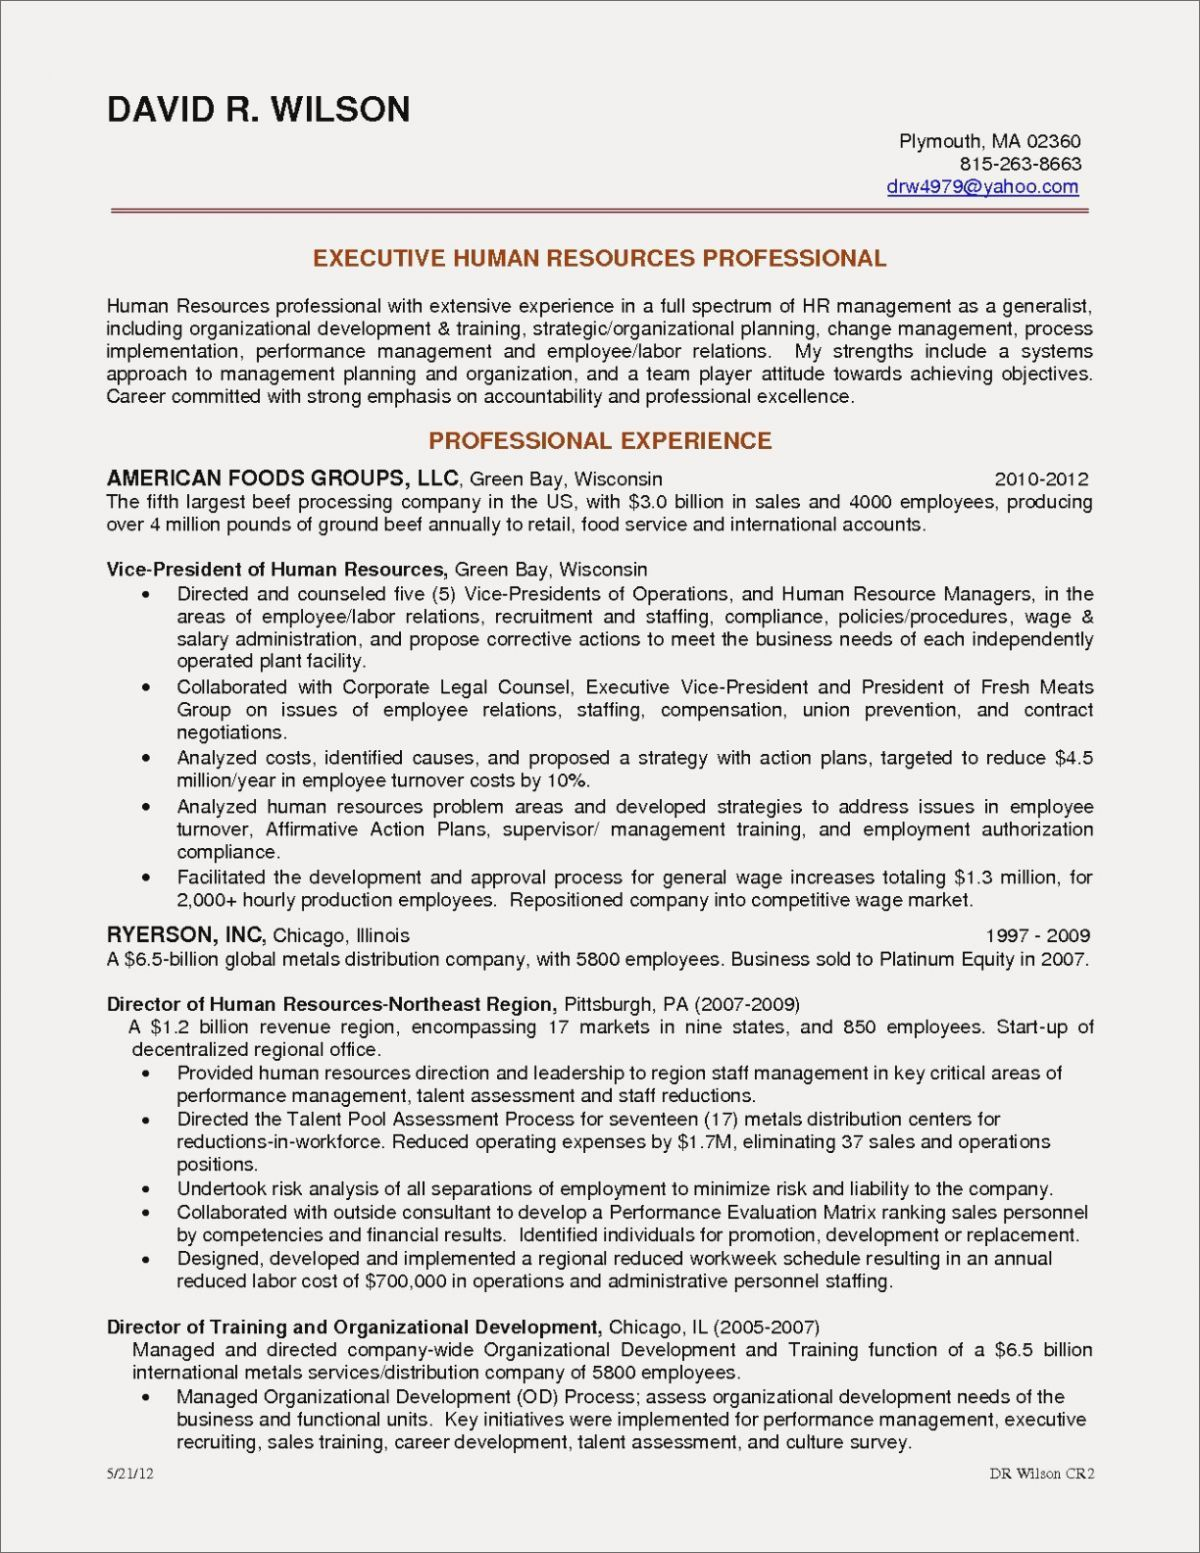 career objective aspirations examples resume best for hrm customer service job the victor Resume Career Objective Resume For Hrm